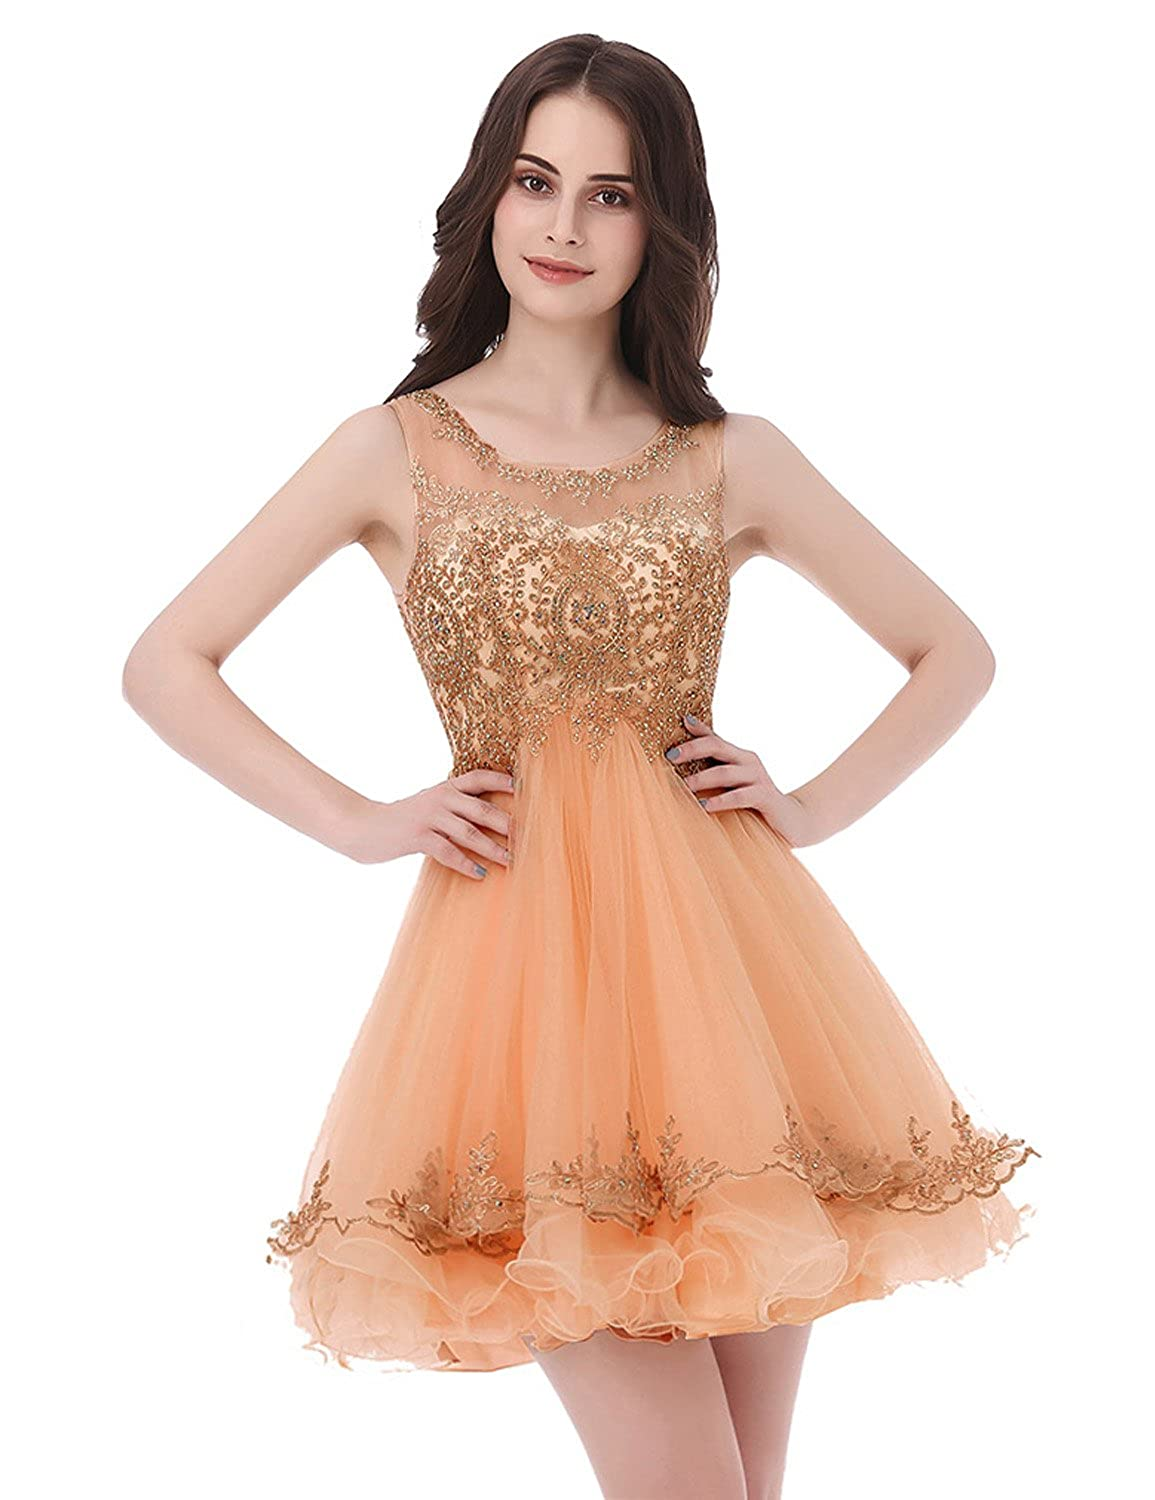 951664af7a9a3 Amazon.com: Belle House Junior's Lace Short Prom Party Ball Gowns  Sweetheart Homecoming Dresses: Clothing